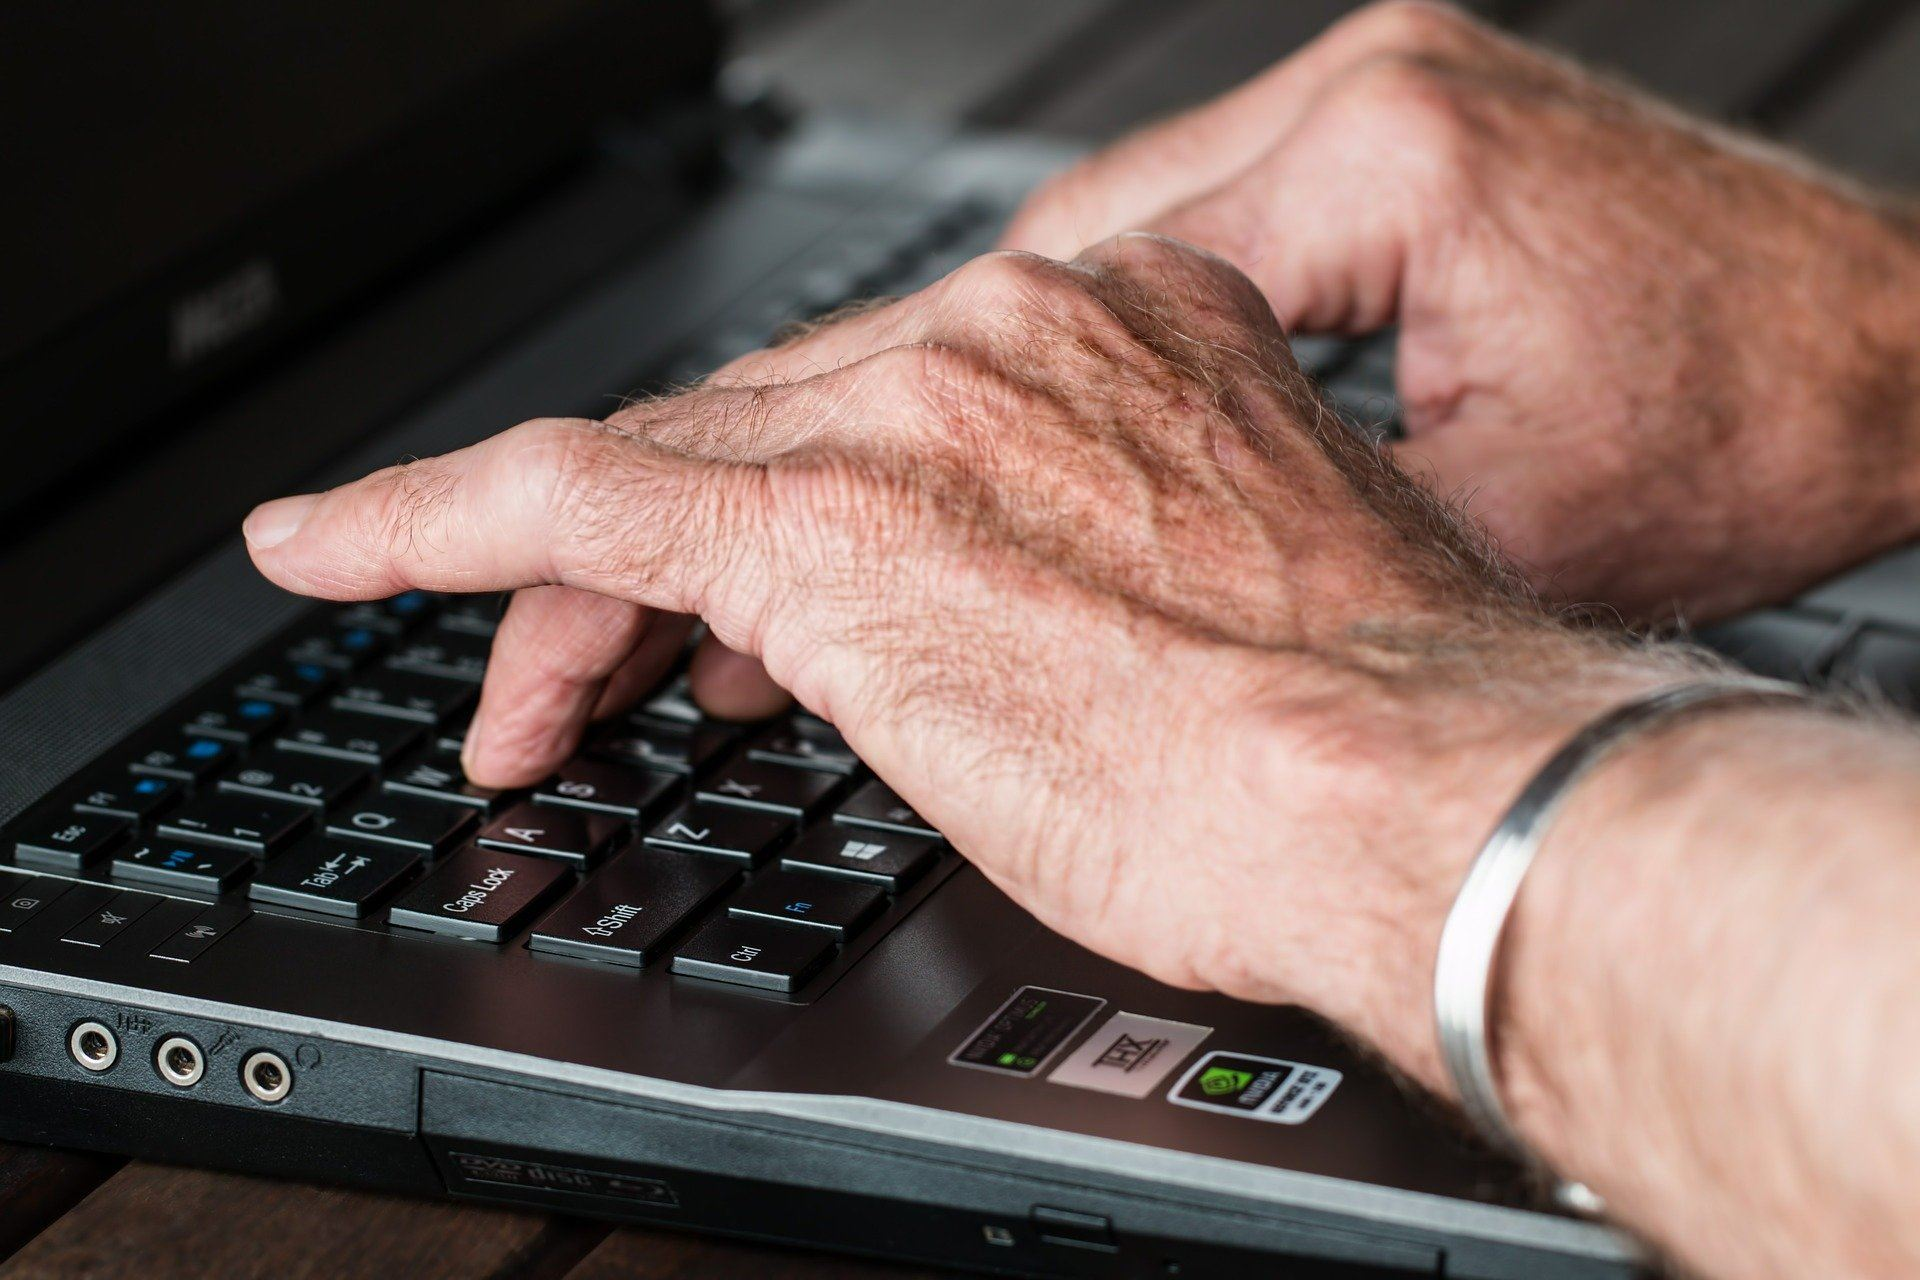 older hands typing